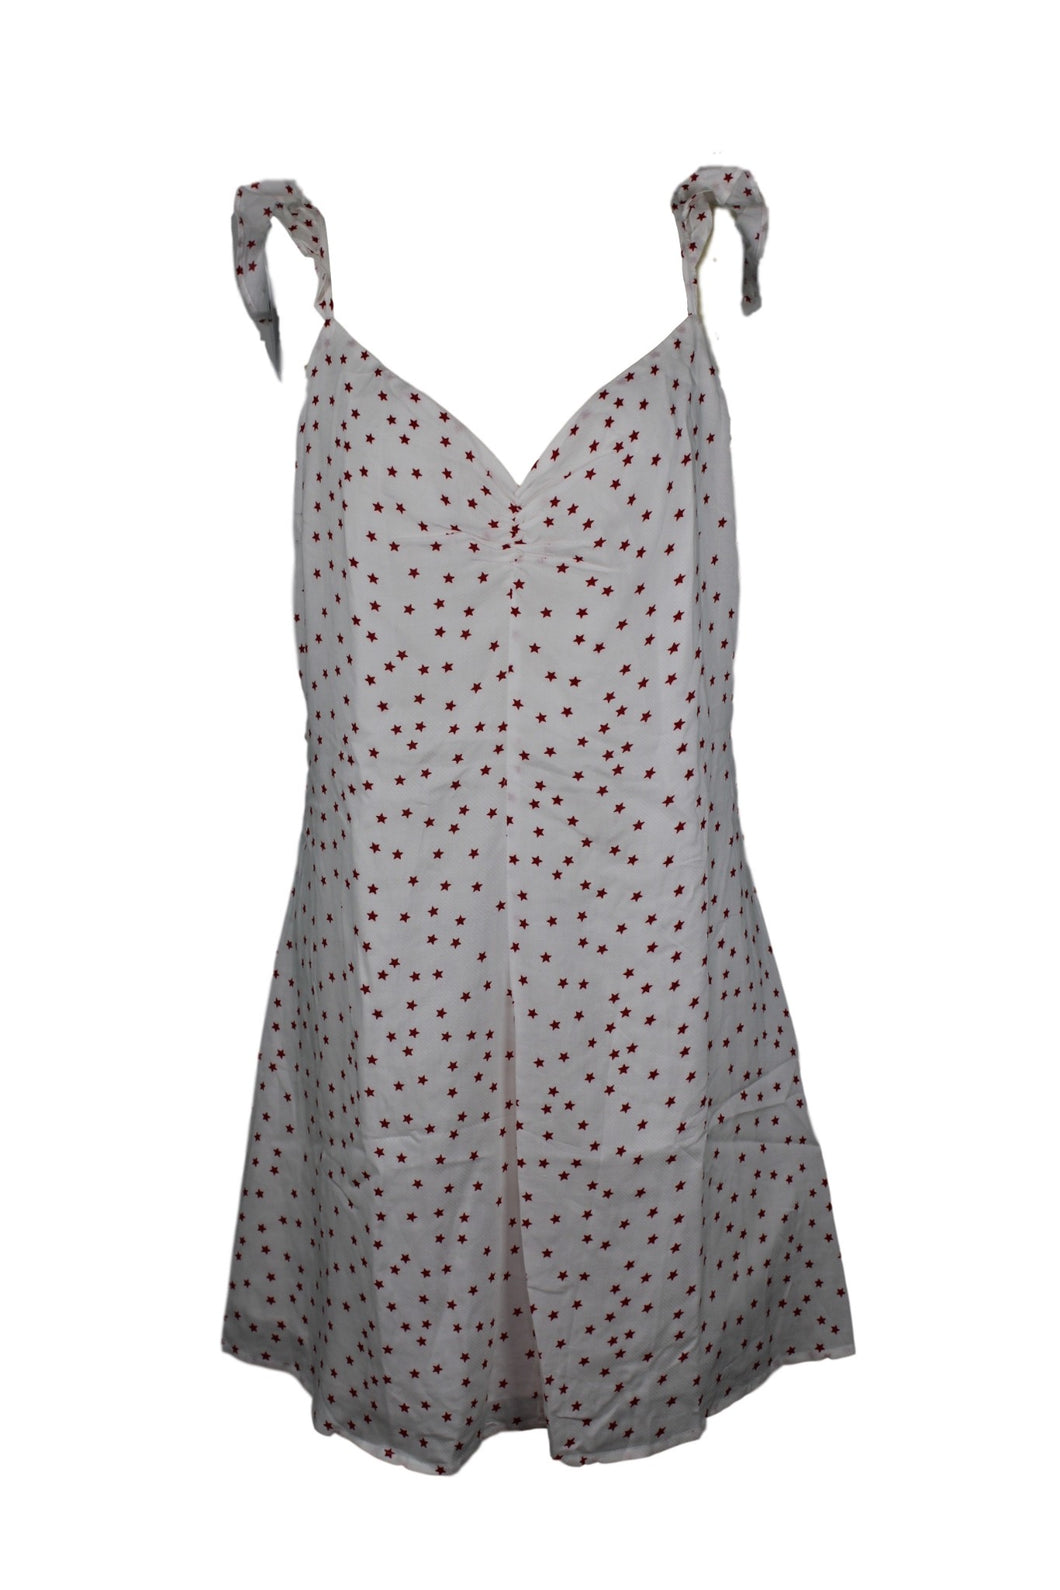 BB Dakota Stars Align Dress sz 8 Ivory w/ Red Star Print Short Mini NWT $88